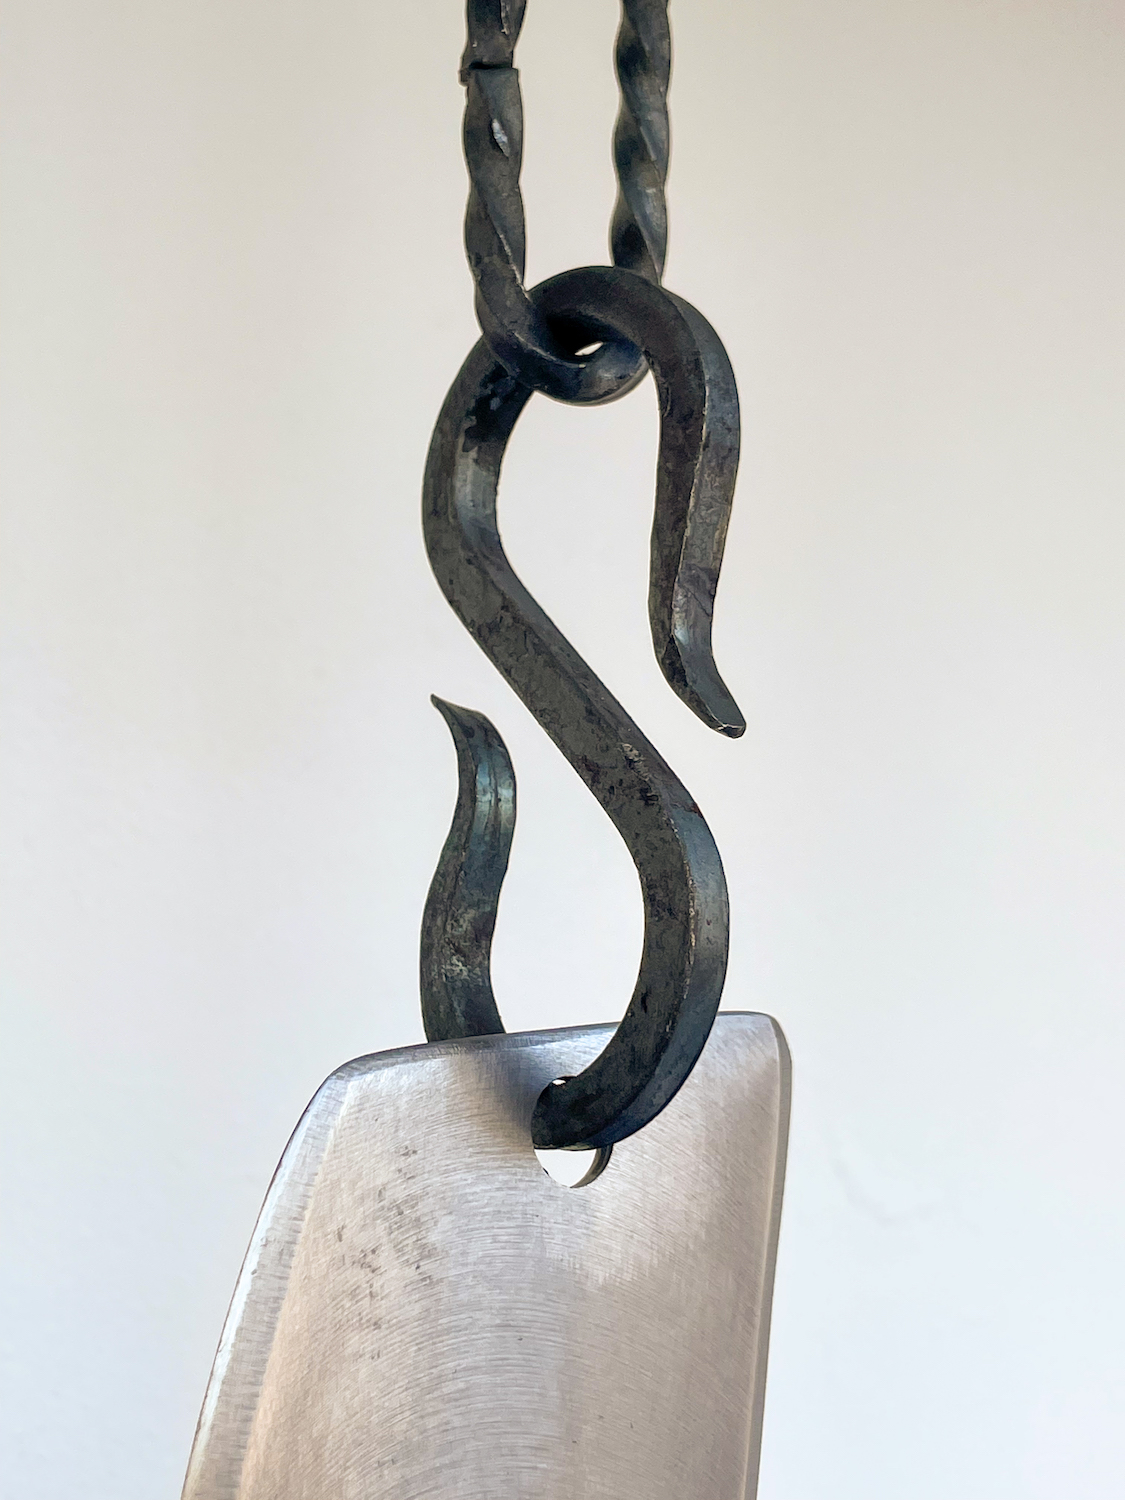 Tarek Lakhrissi, BETRAYING TIME AND SPACE (detail), 2021. Steel and steel chains. 65 x 8 x 0.5 cm.